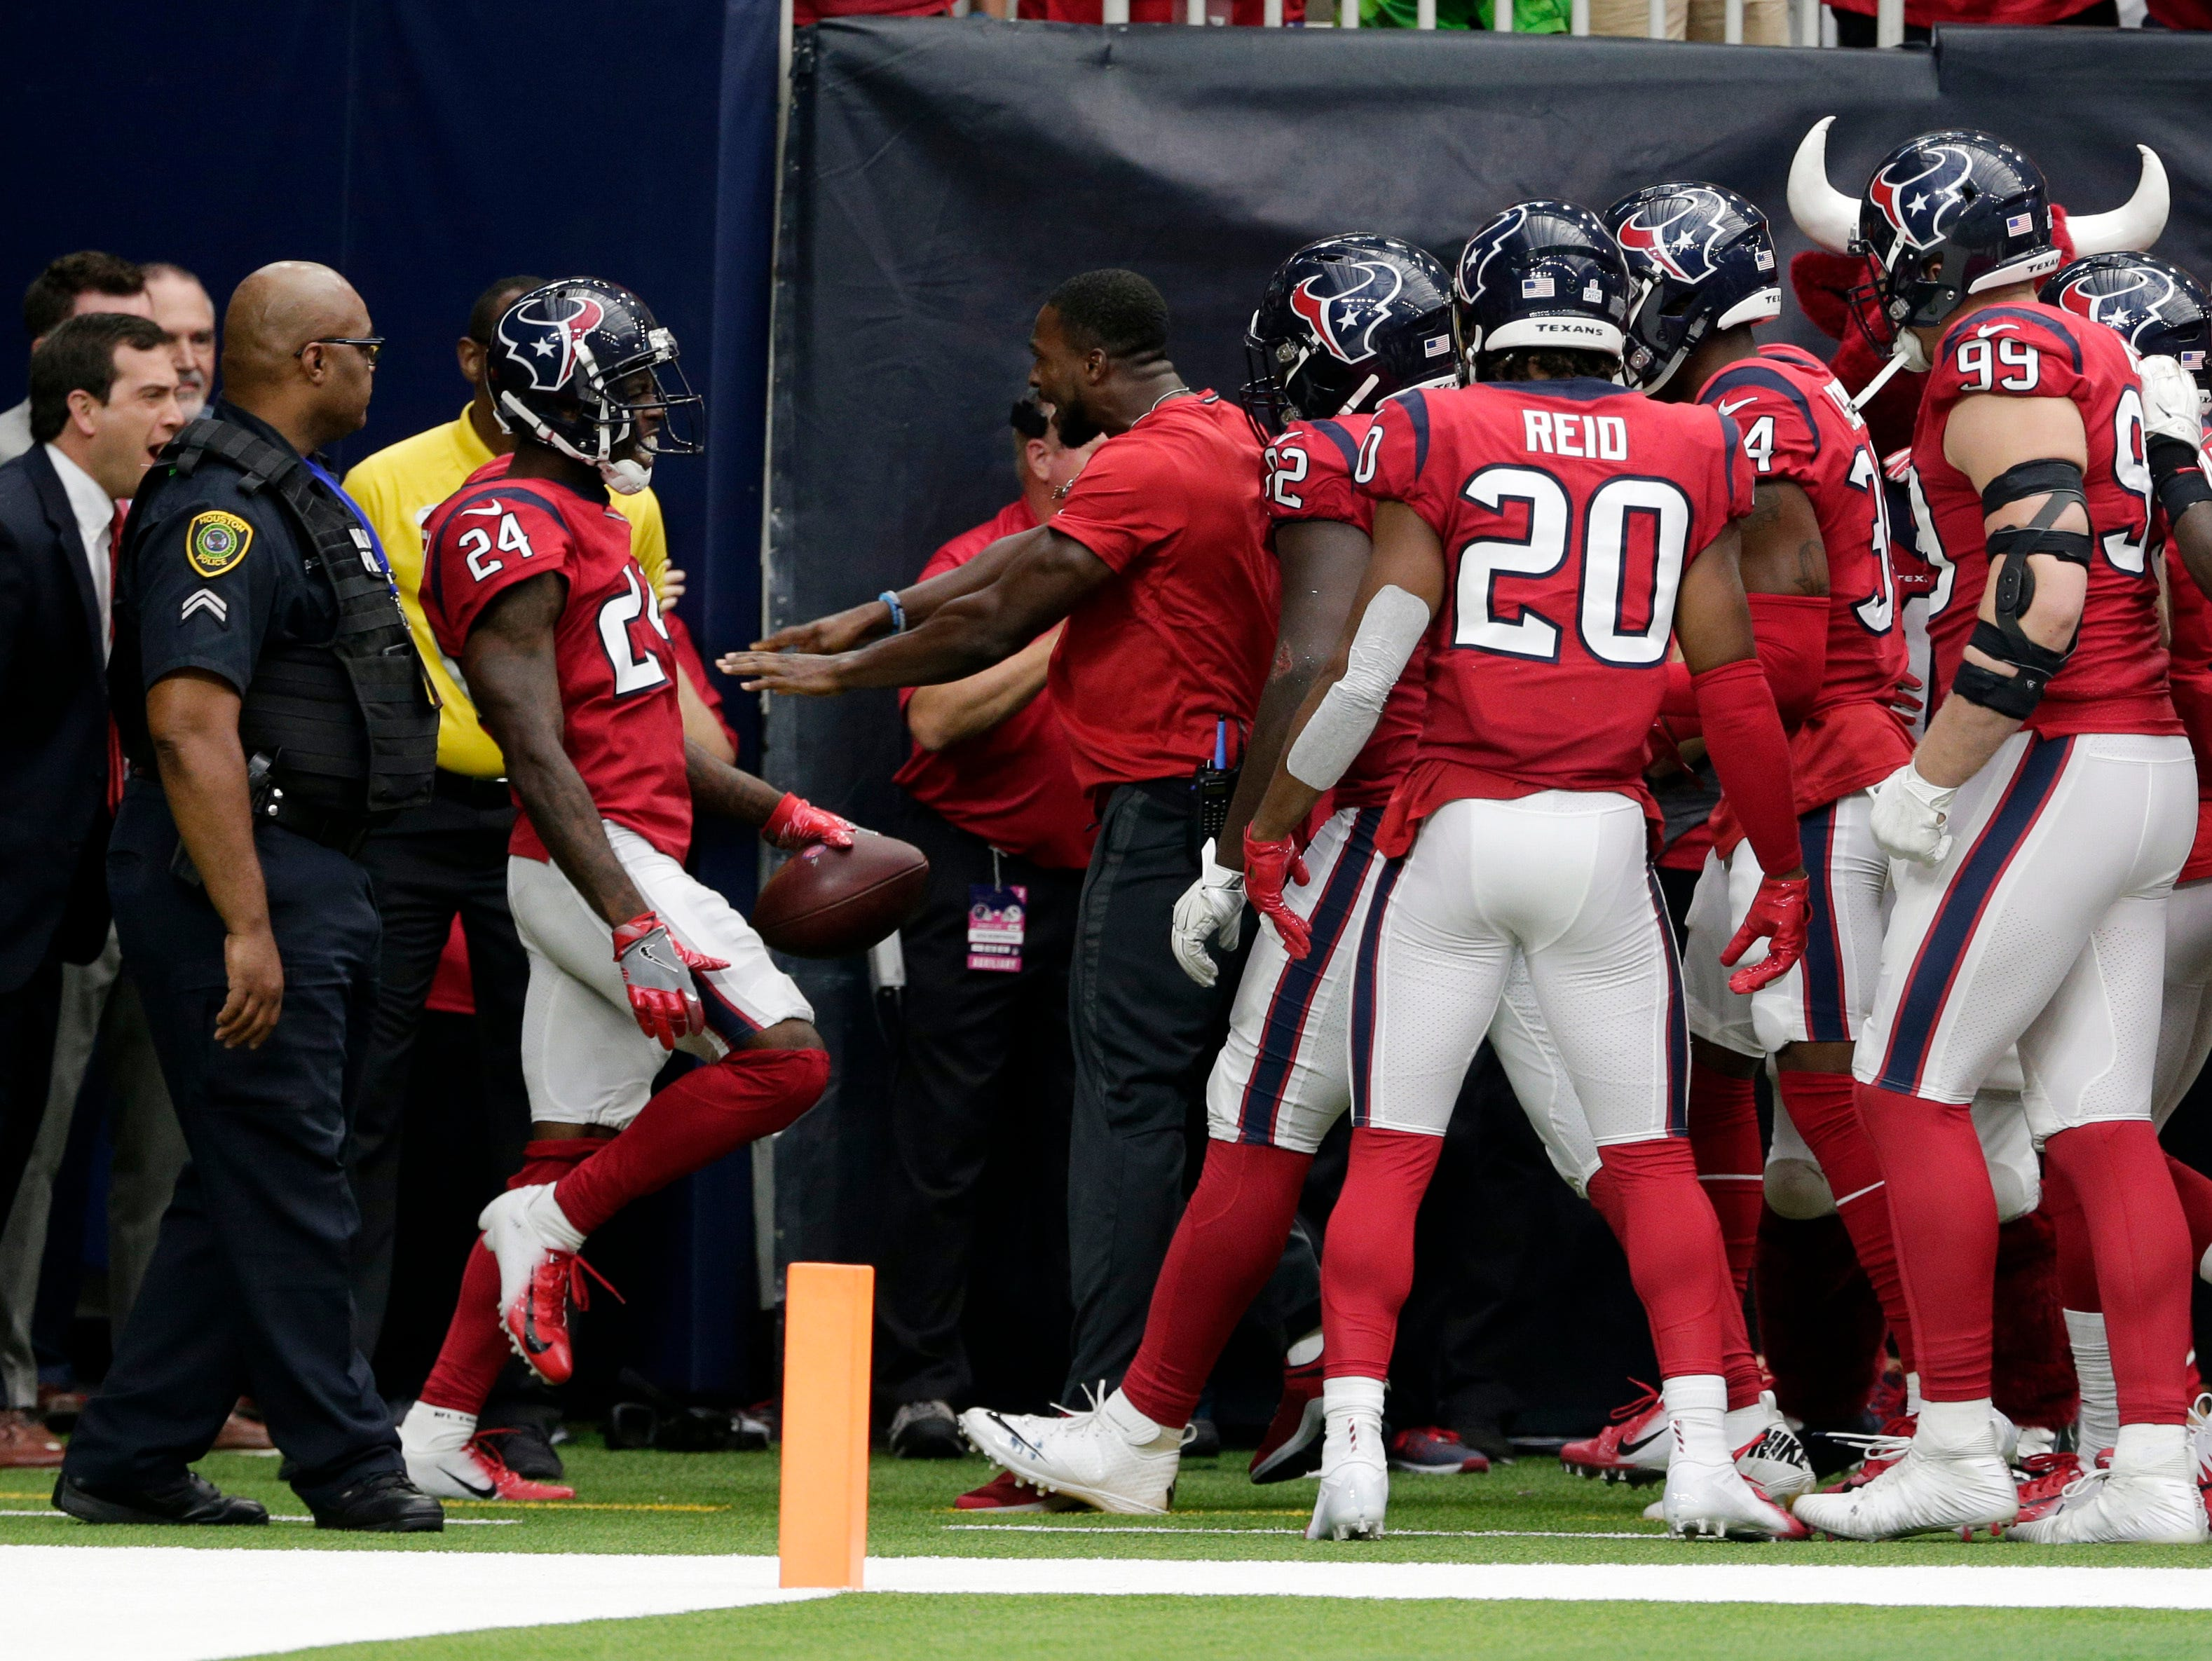 Houston Texans cornerback Johnathan Joseph (24) celebrates with teammates after he ran back an interception for a touchdown against the Buffalo Bills during the second half of an NFL football game, Sunday, Oct. 14, 2018, in Houston. (AP Photo/Michael Wyke)